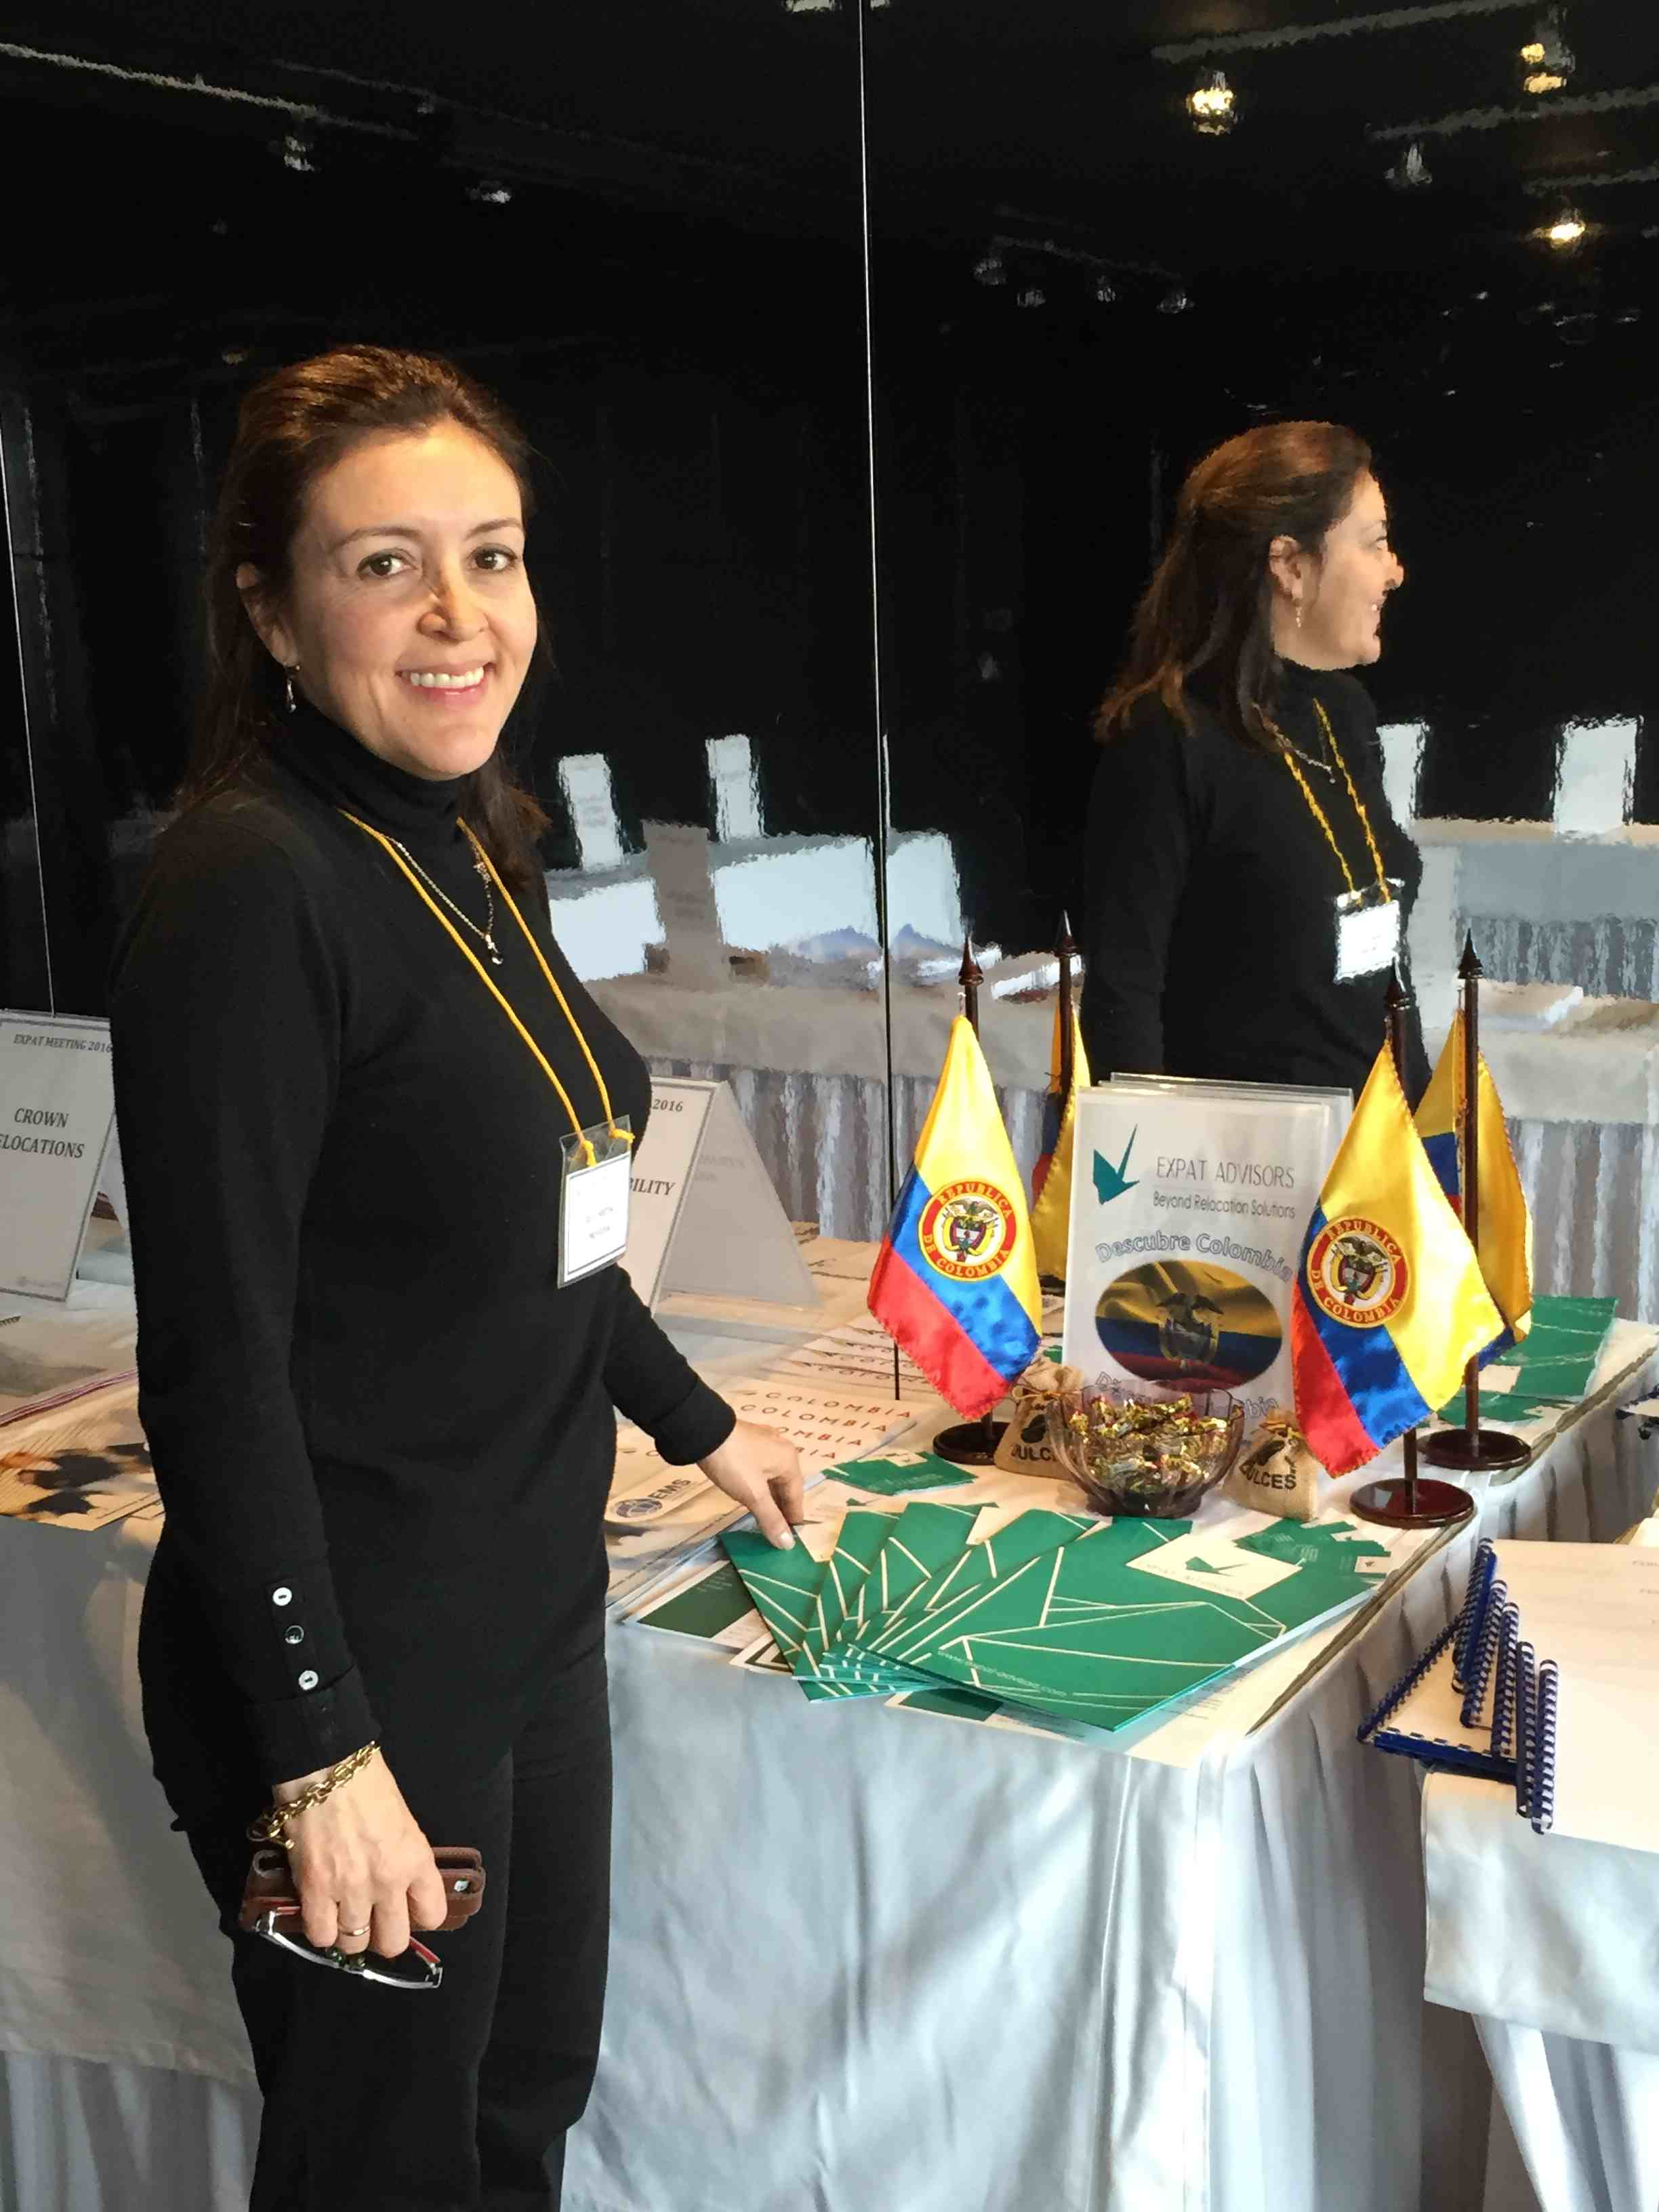 V-Feria-Expat-Meeting-2016-2